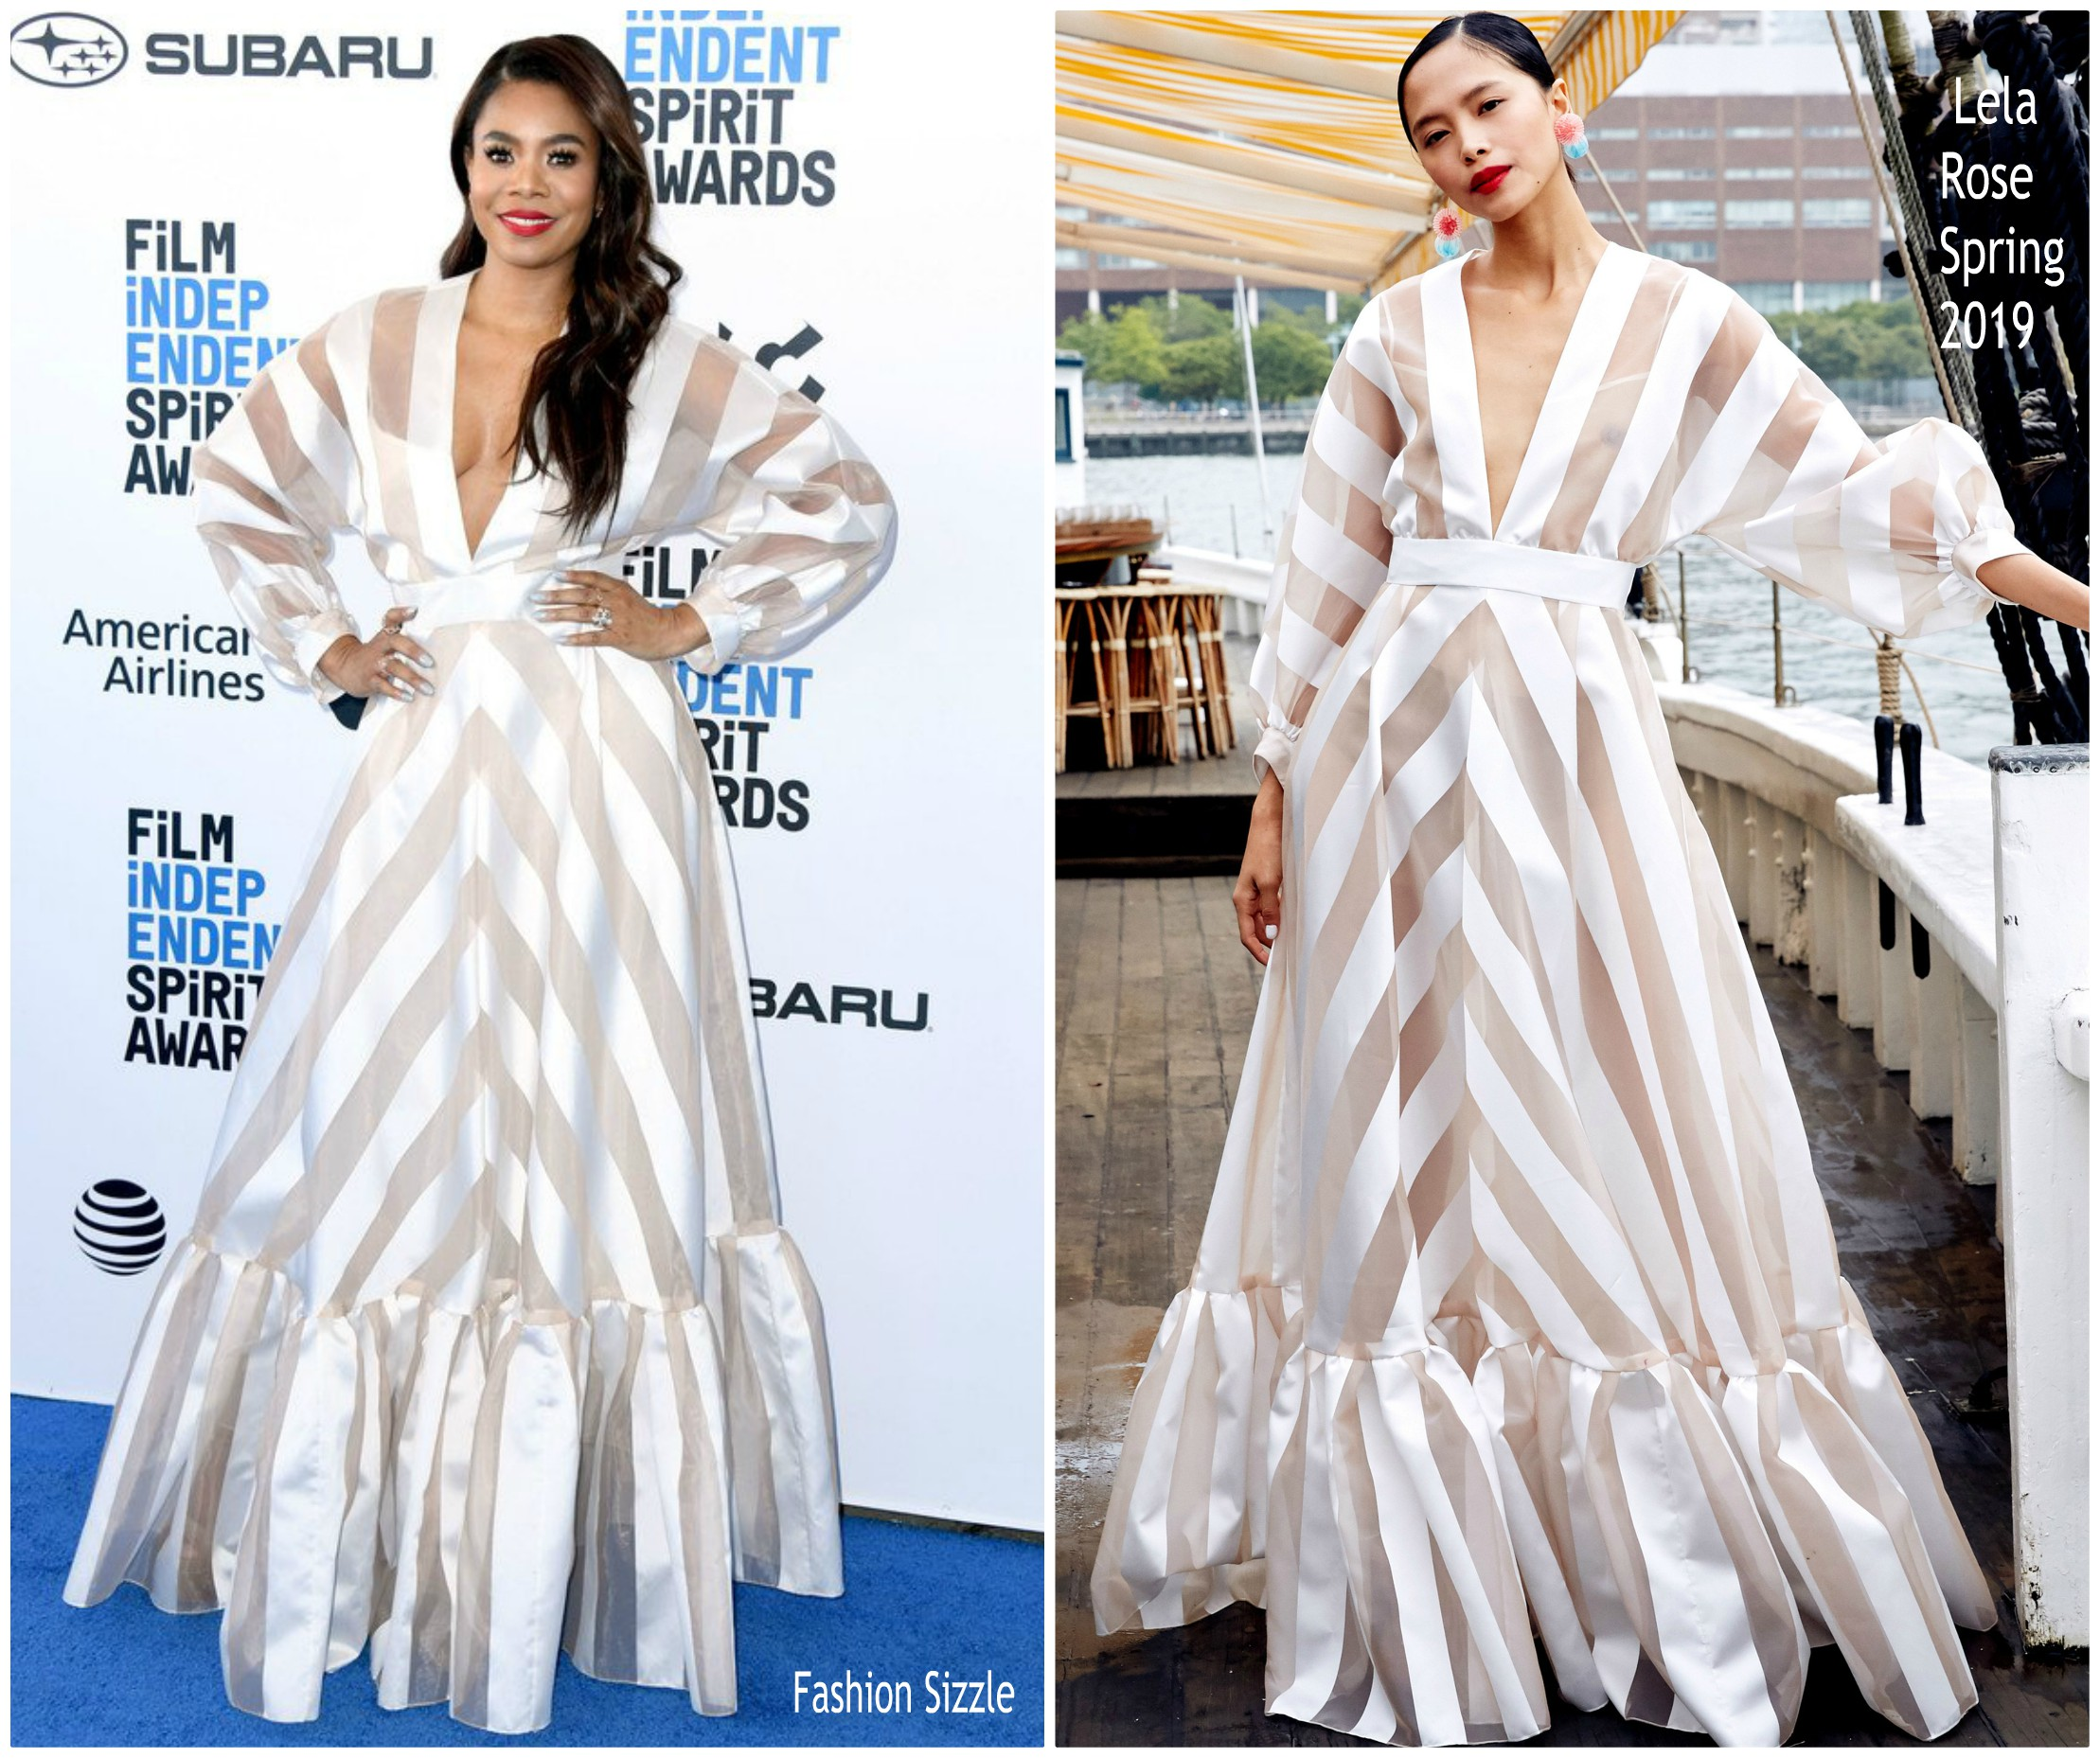 regina-hall-in-lela-rose-2019-film-independent-spirit-awards